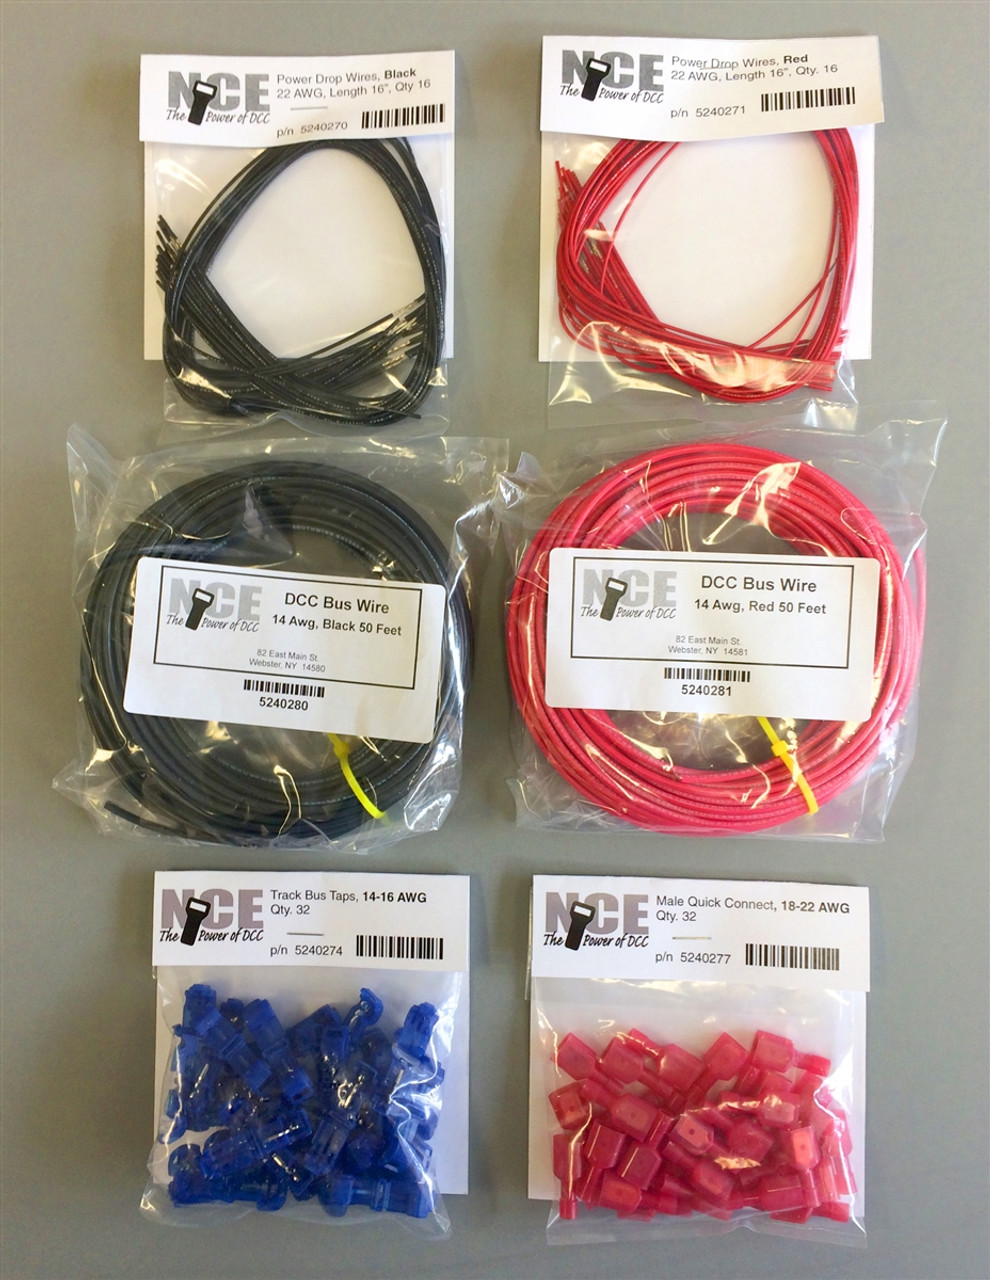 medium resolution of nce 524268 dcc main bus wiring kit for typical 50 foot double track mainline